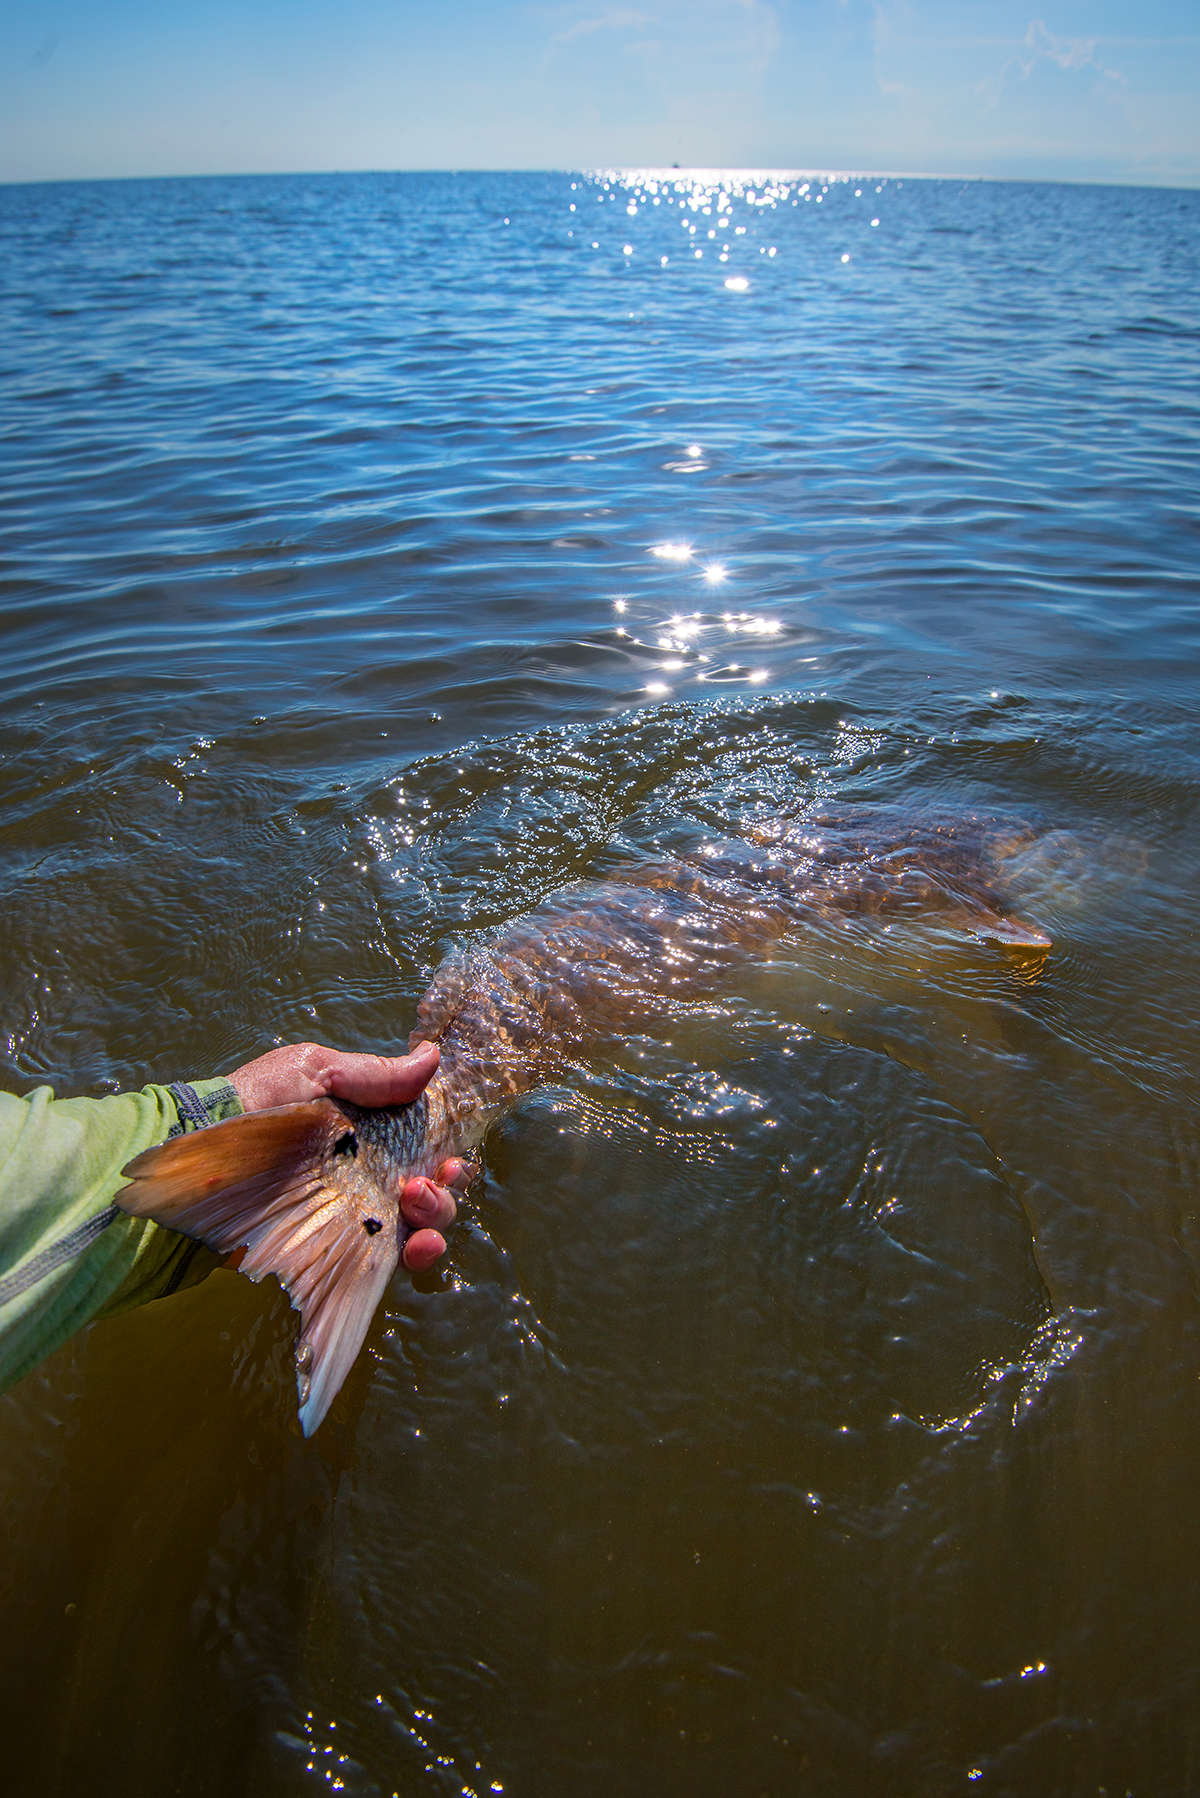 ...handling the fish with care and fully reviving them before releasing back in the water.